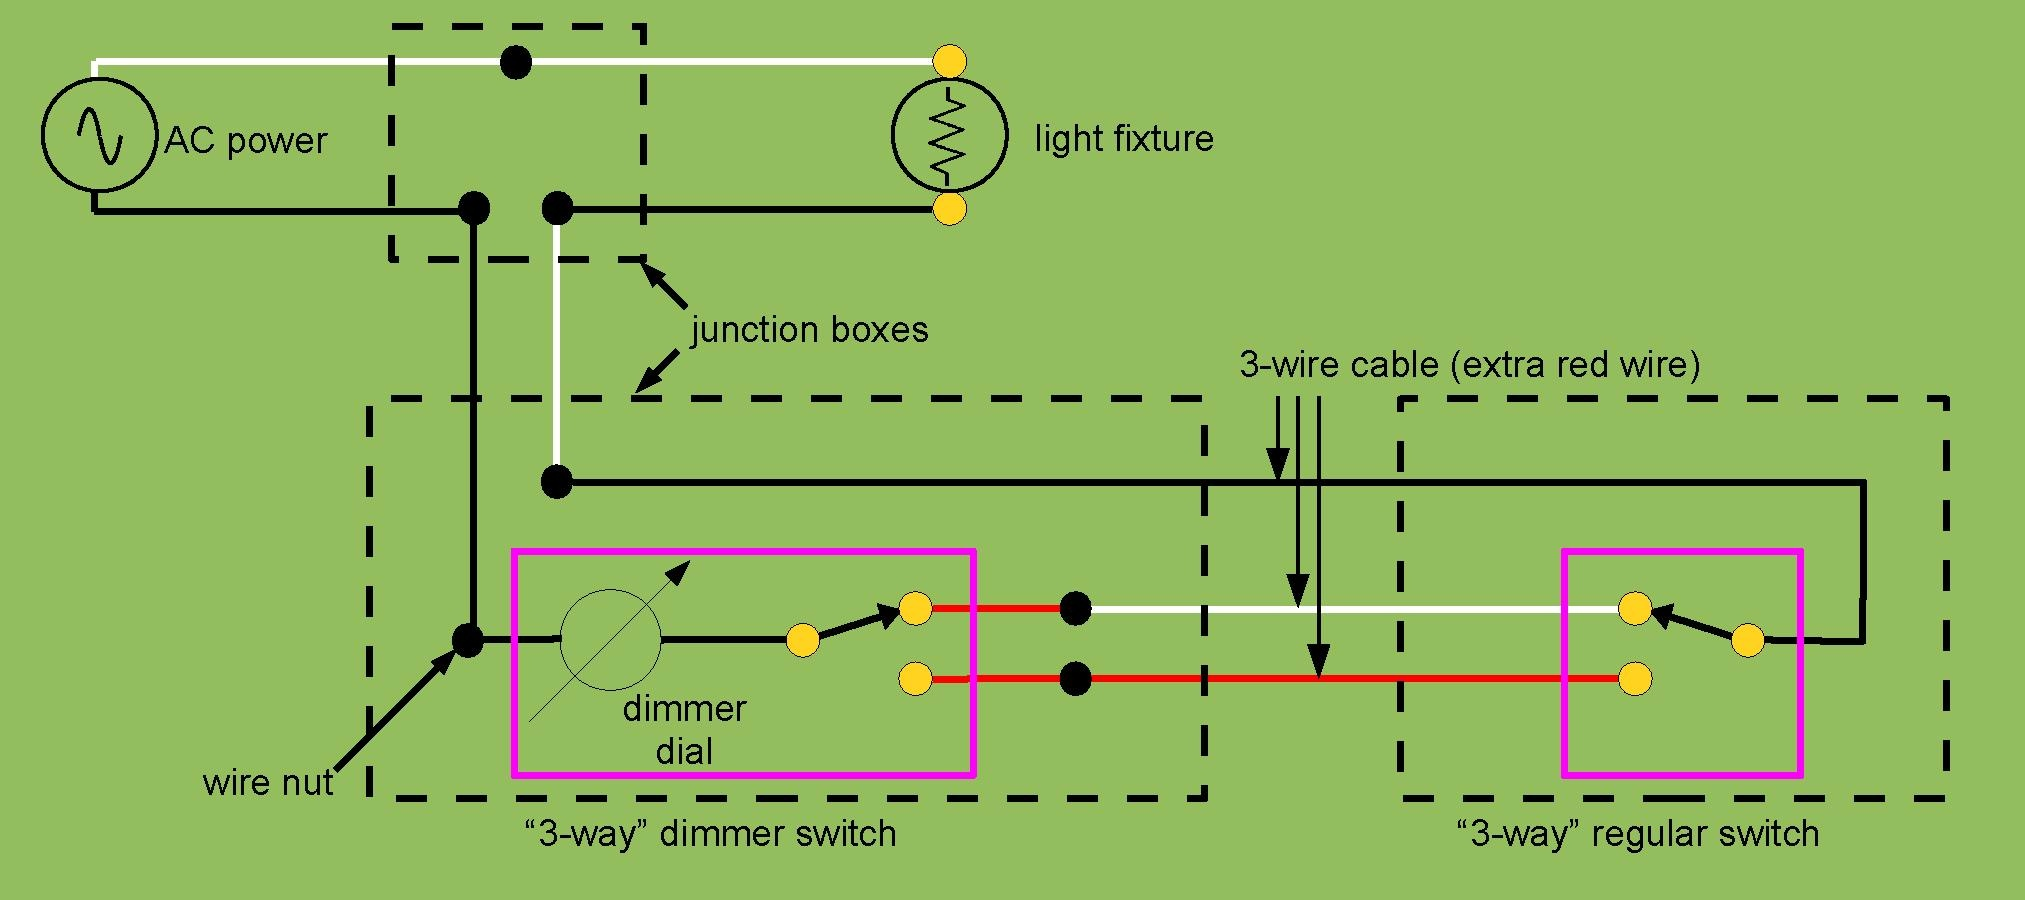 File3 way dimmer switch wiringpdf wikimedia commons file3 way dimmer switch wiringpdf publicscrutiny Image collections